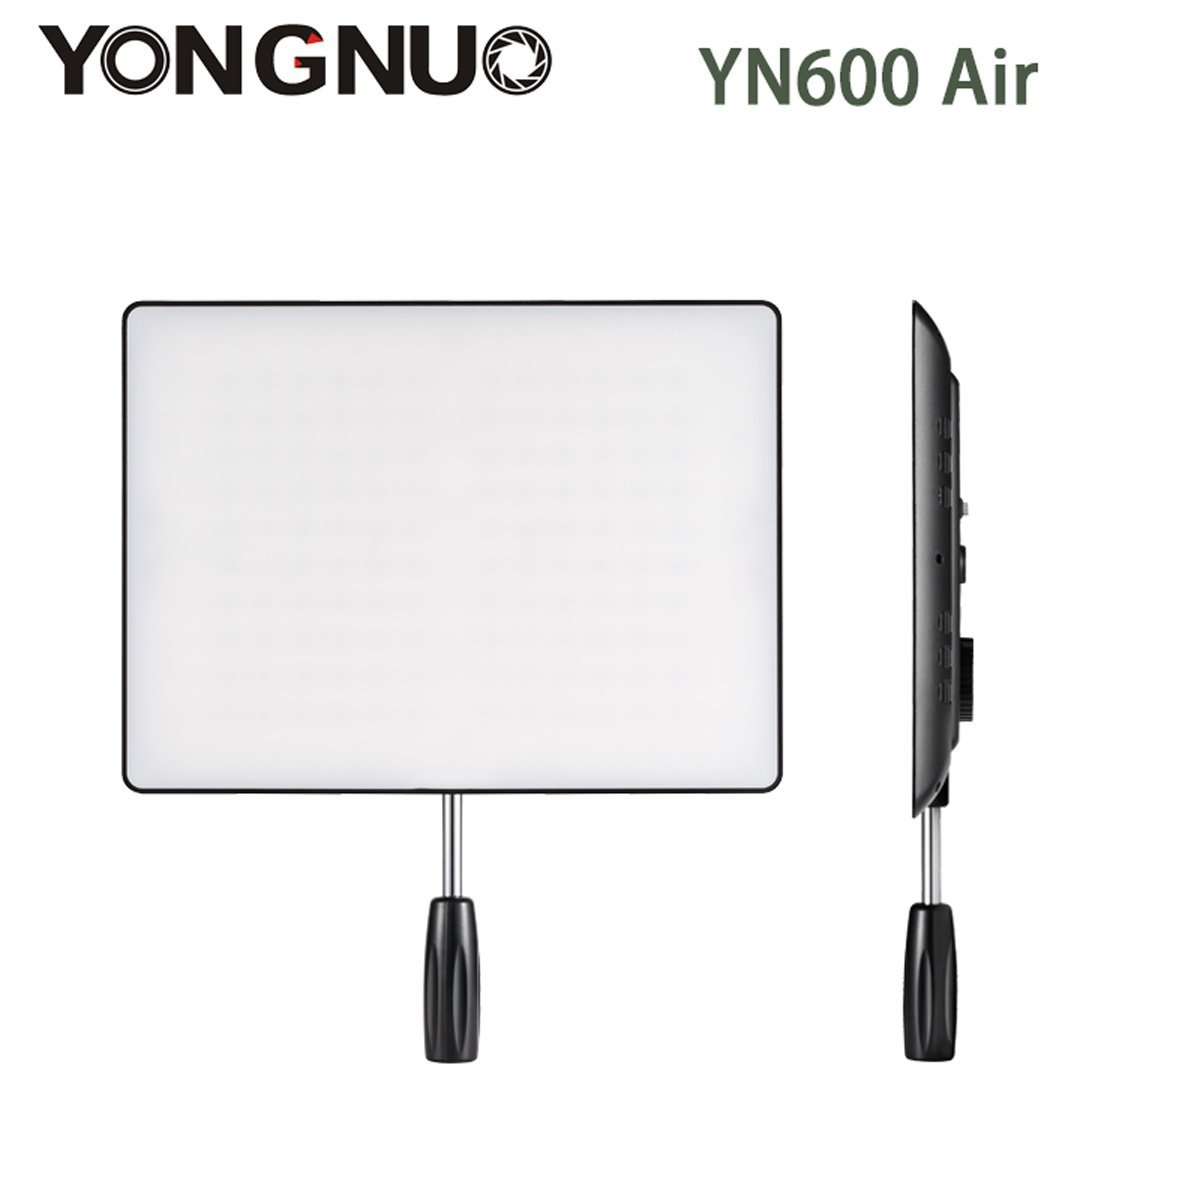 цена на YONGNUO YN600 Air Ultra Thin LED Camera Video Light 3200K-5500K for Canon Nikon Pentax Olympas Samsung DSLR & Camcorder